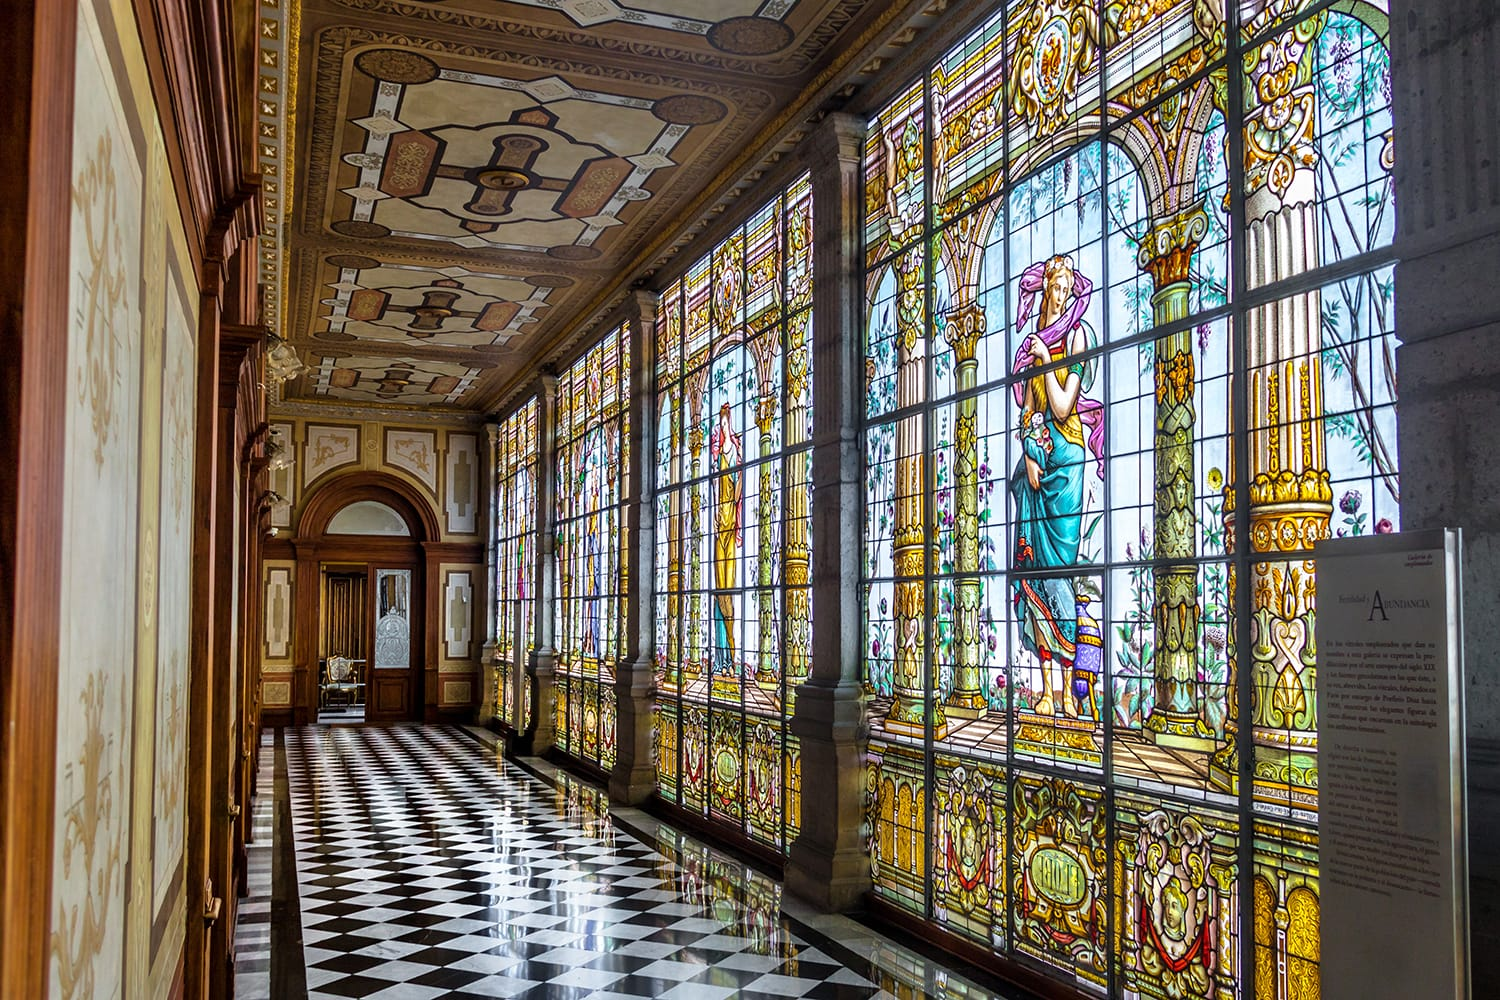 Chapultepec Castle hallway corridor with Stained glass windows - Mexico City, Mexico